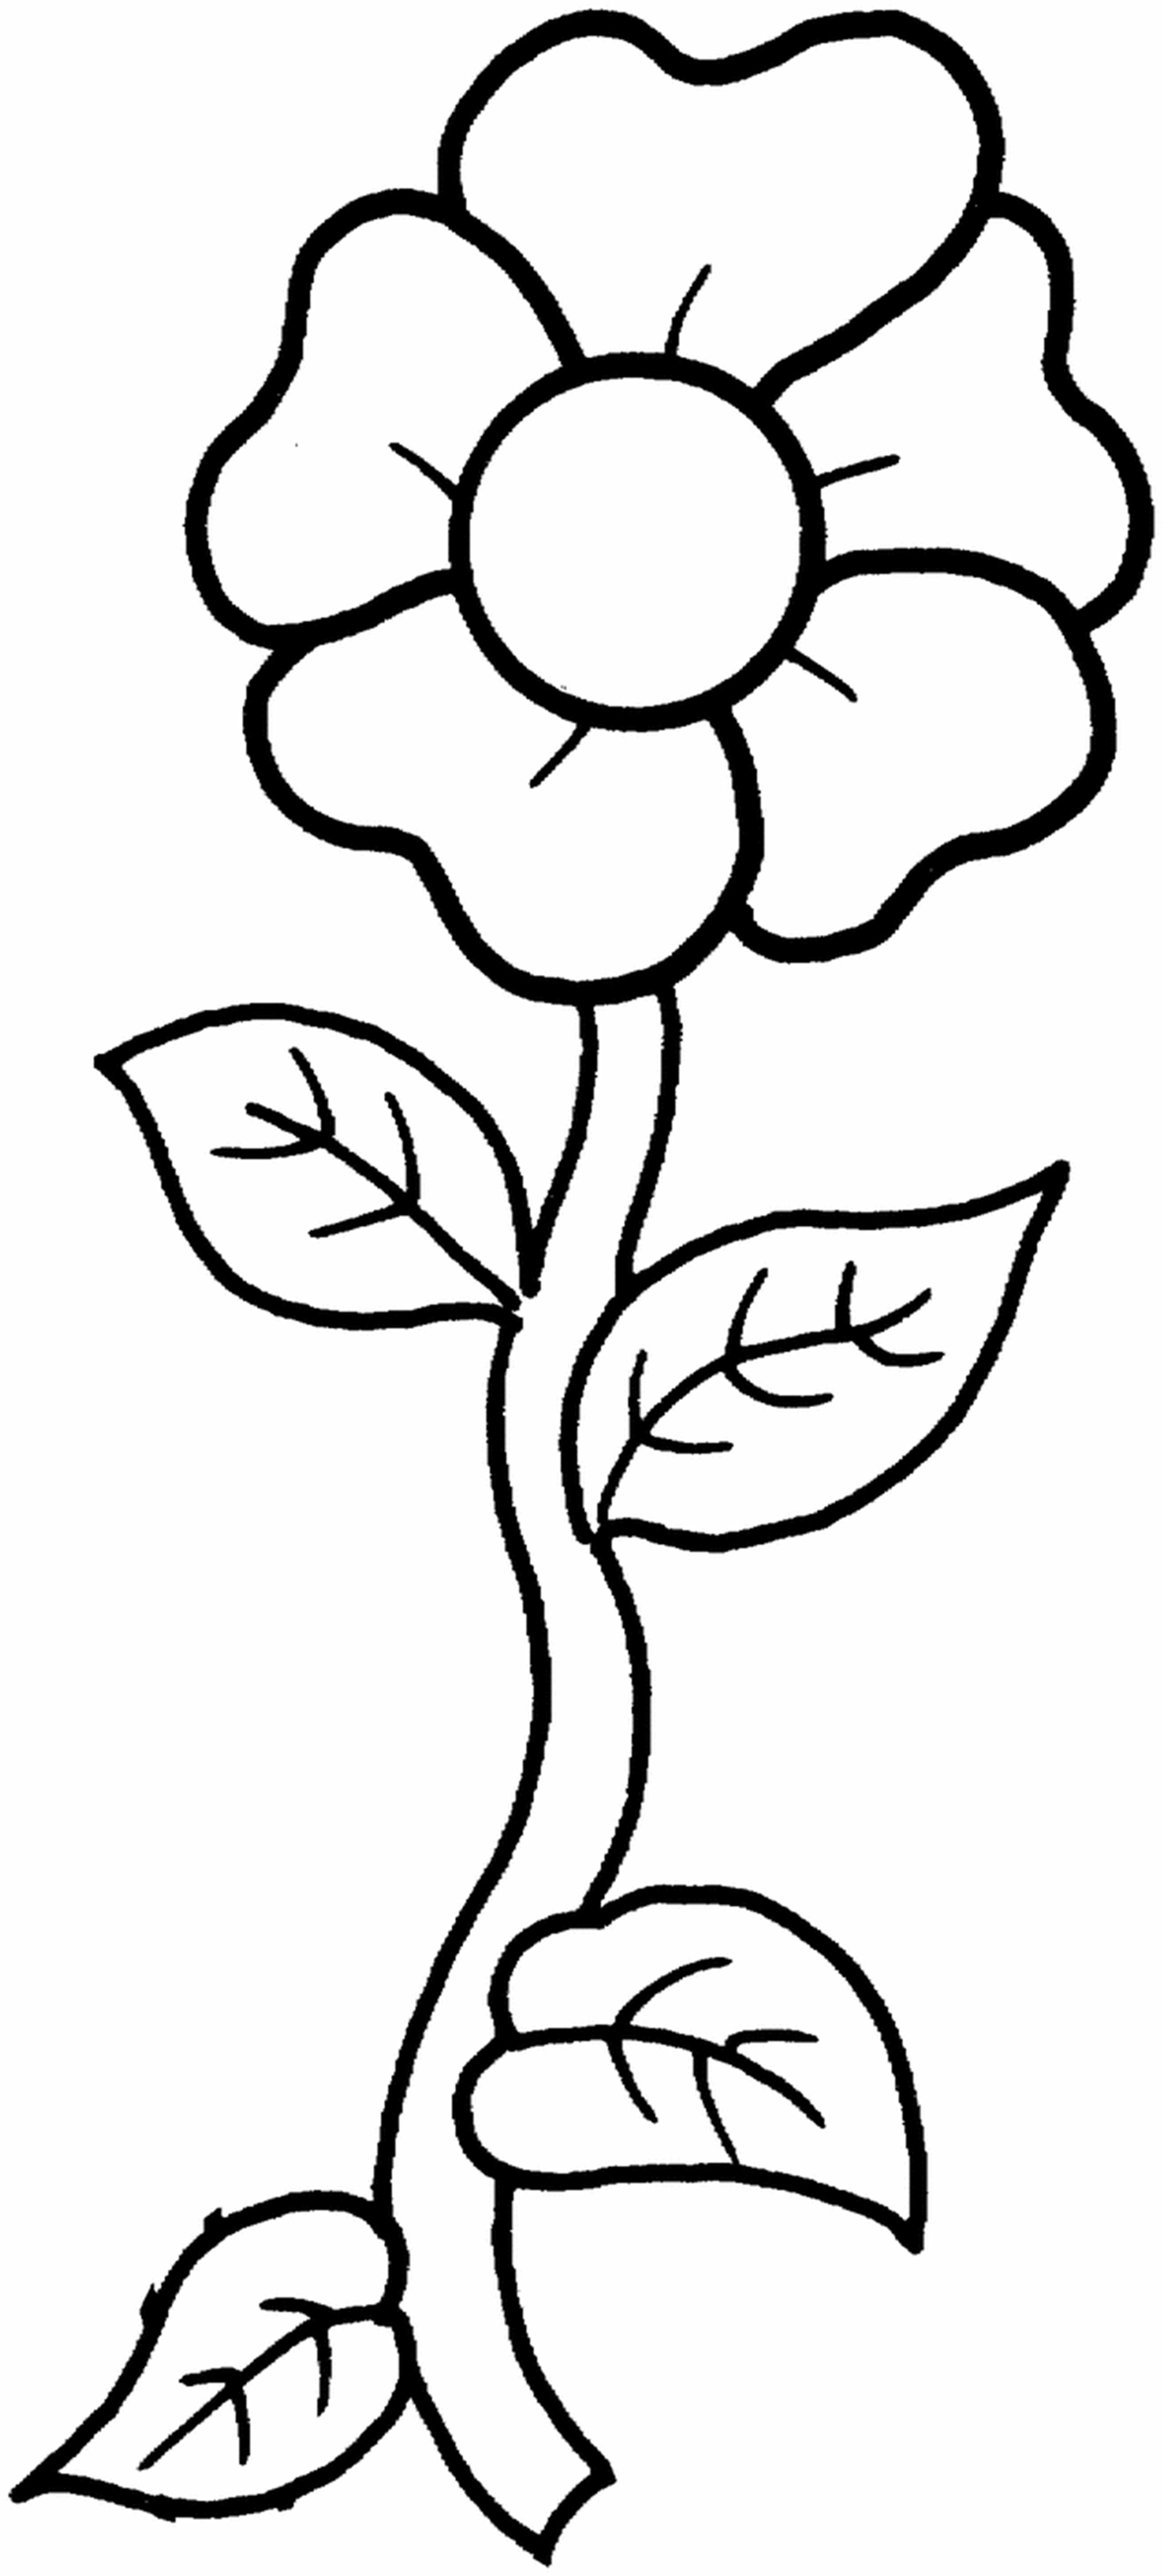 flower coloring pages for kids flowers printing pages creative children kids pages flower for coloring